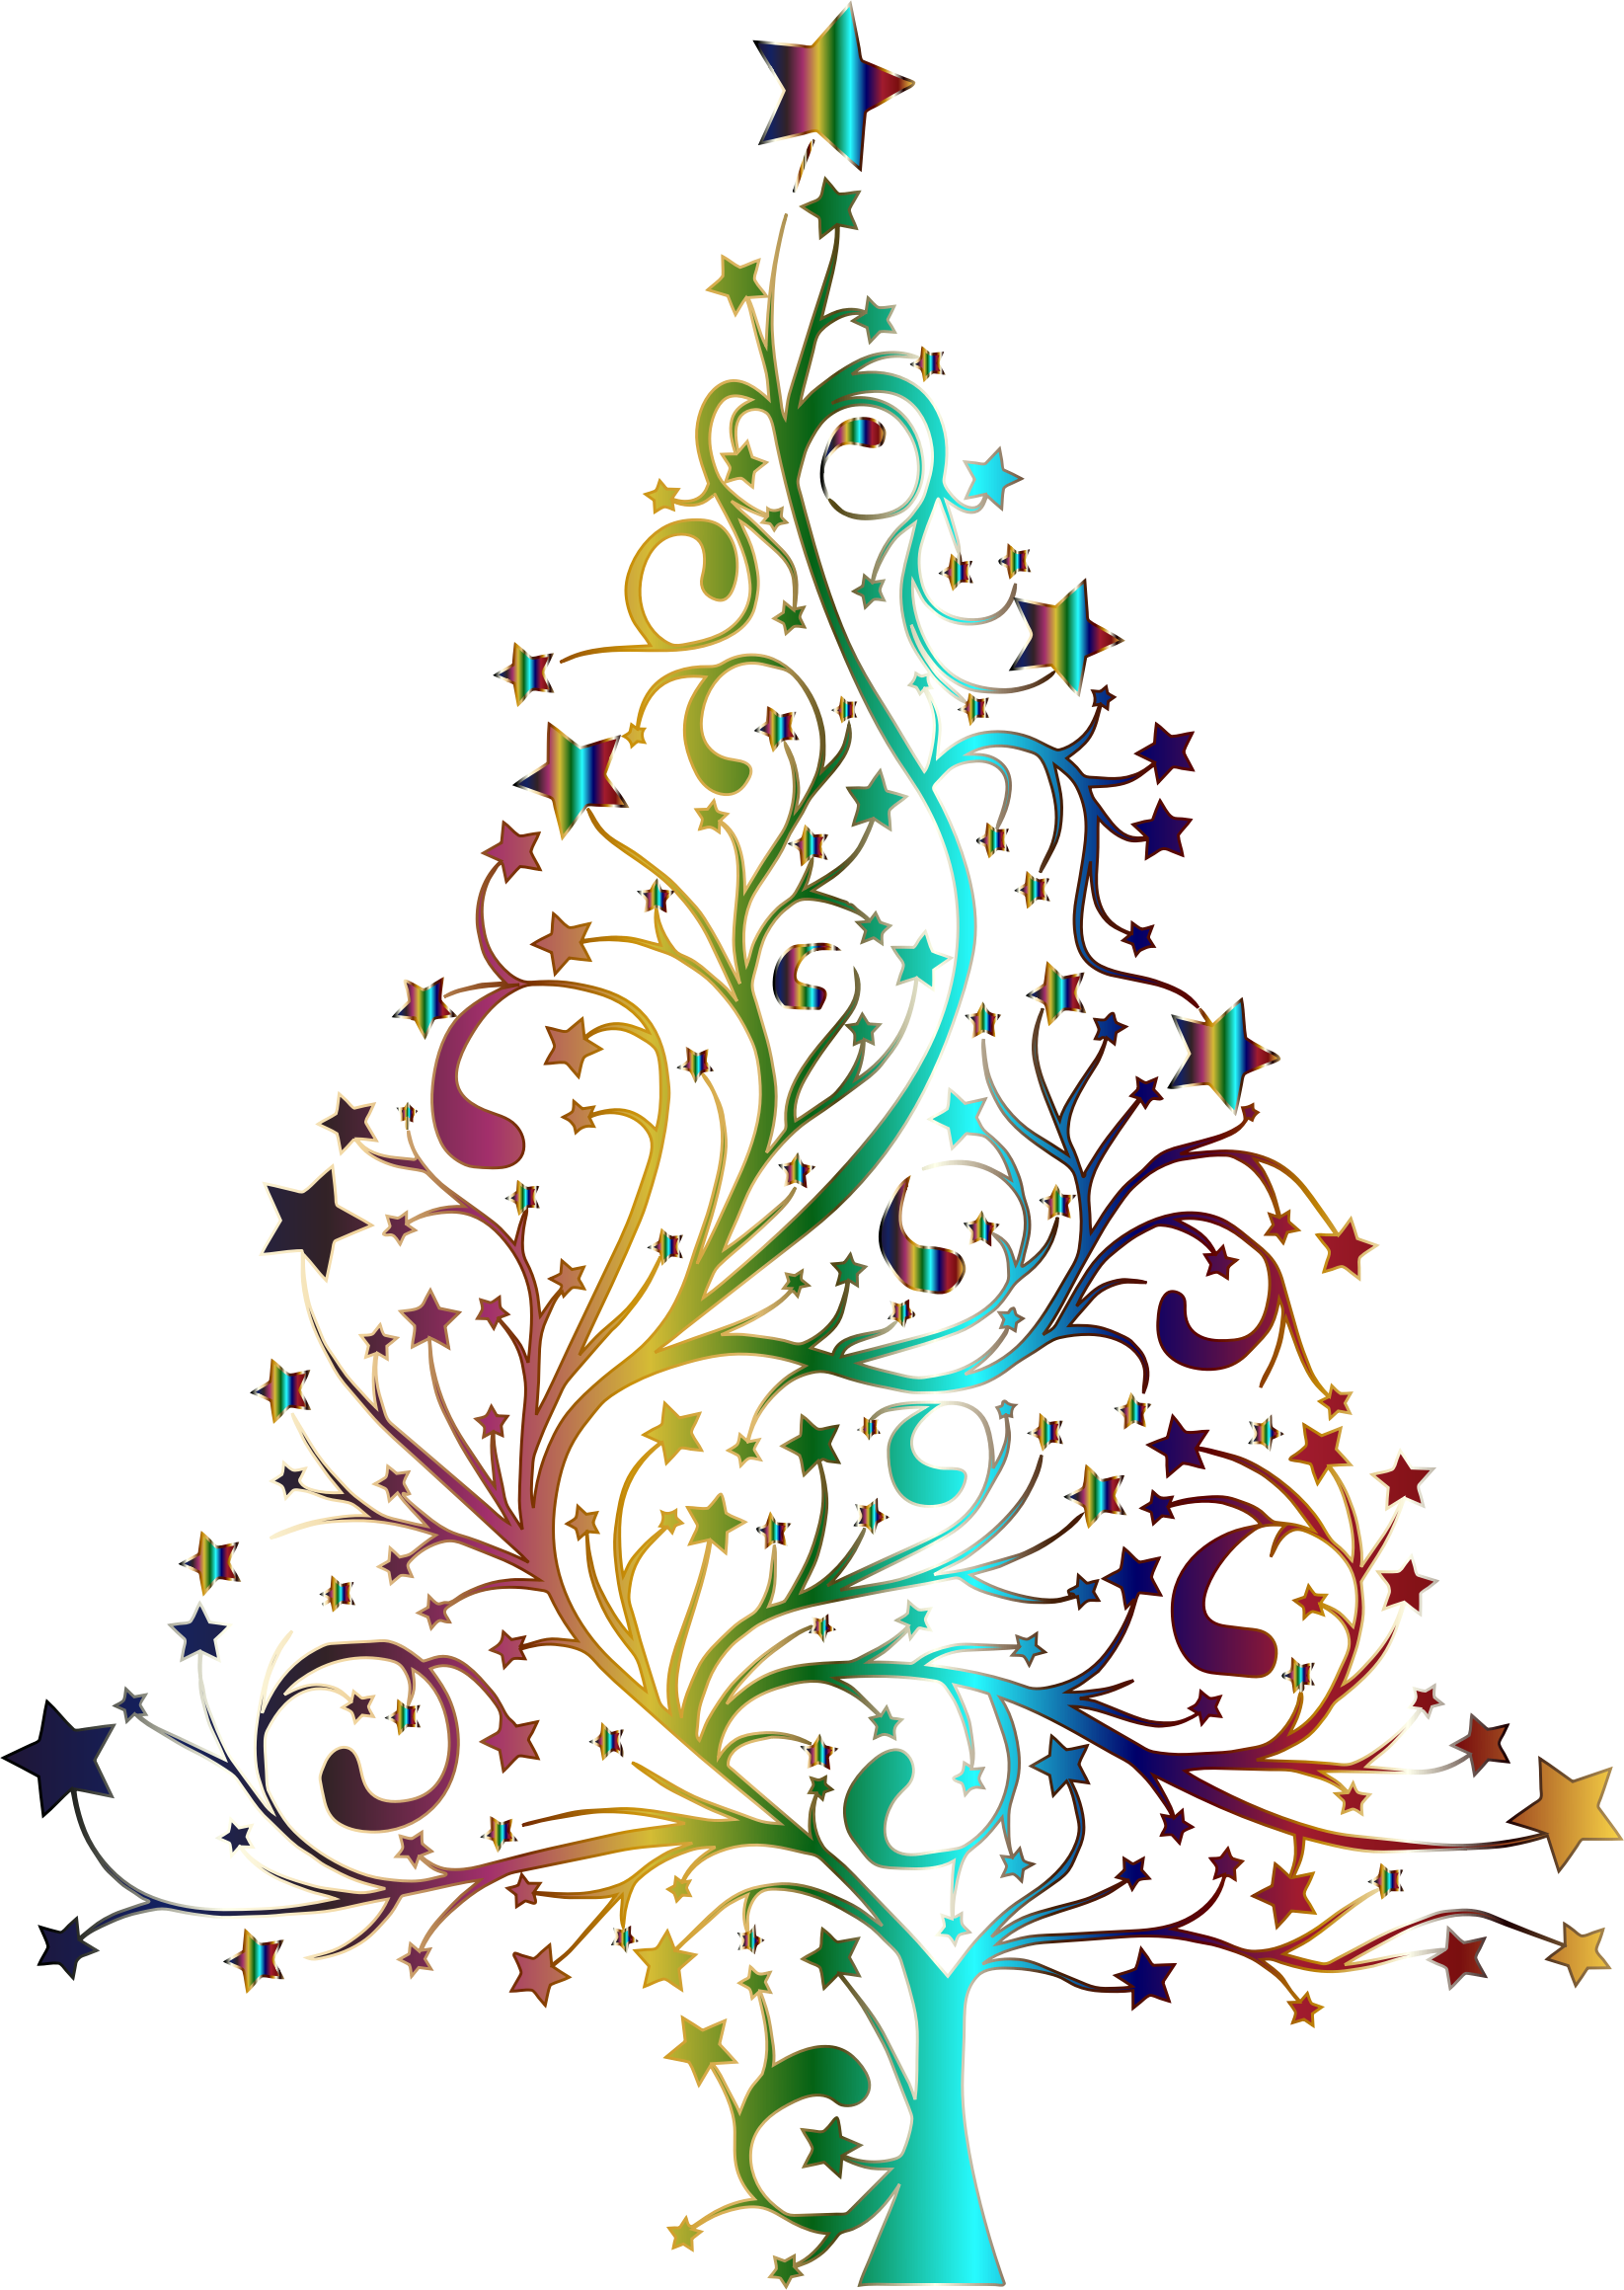 Gold christmas tree clipart clip art transparent library 28+ Collection of Christmas Tree Clipart Transparent Background ... clip art transparent library